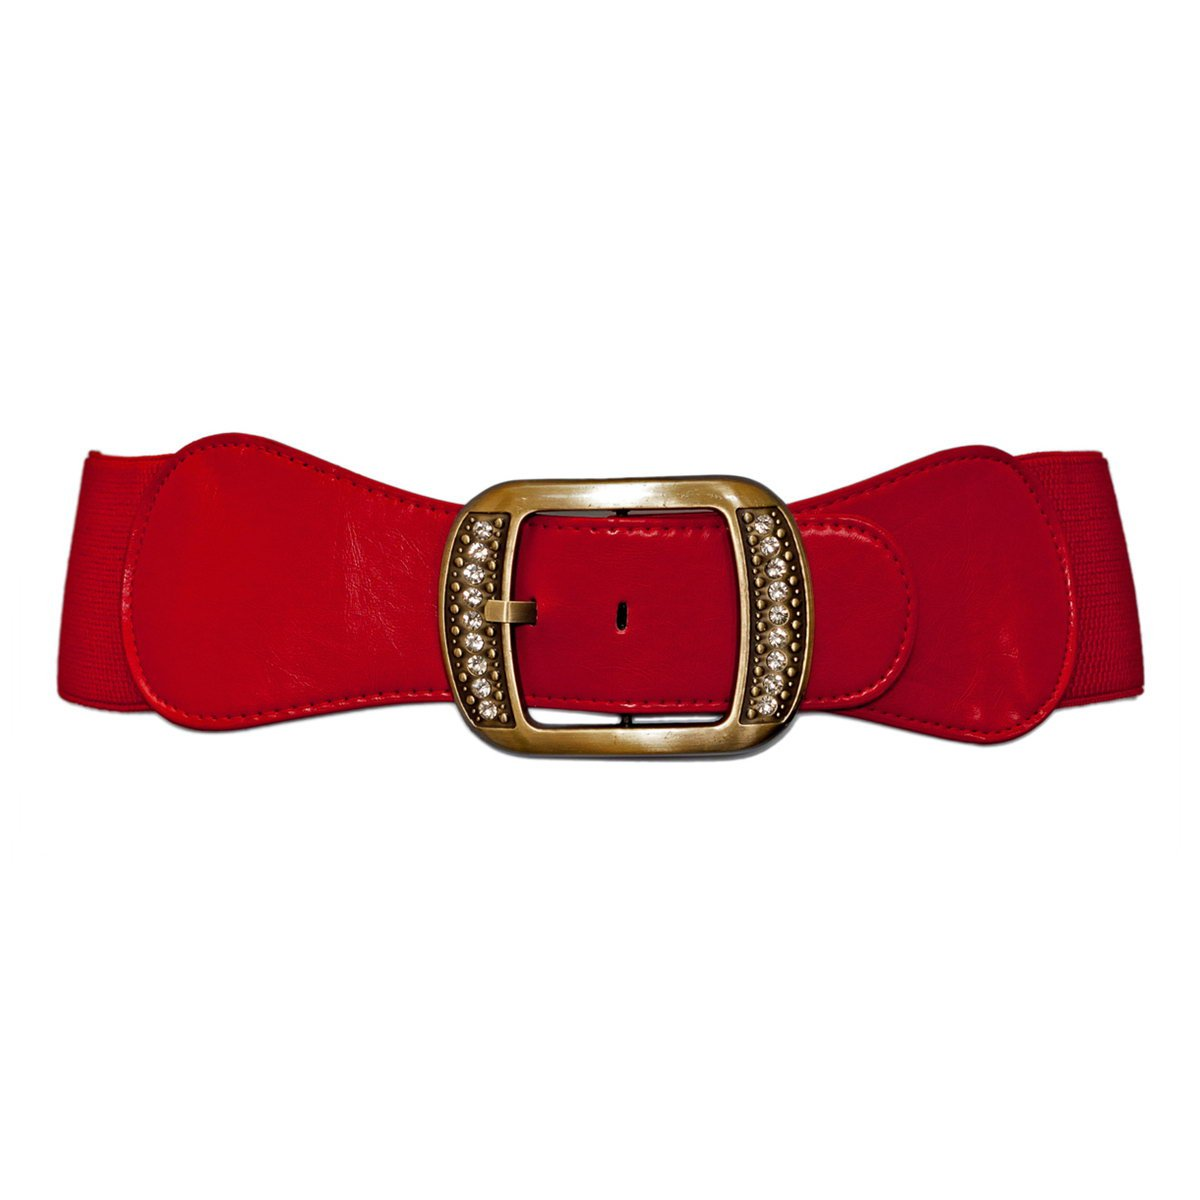 eVogues Plus Size Rhinestone Studded Burnished Buckle Elastic Belt B20121031B_BLK-0001